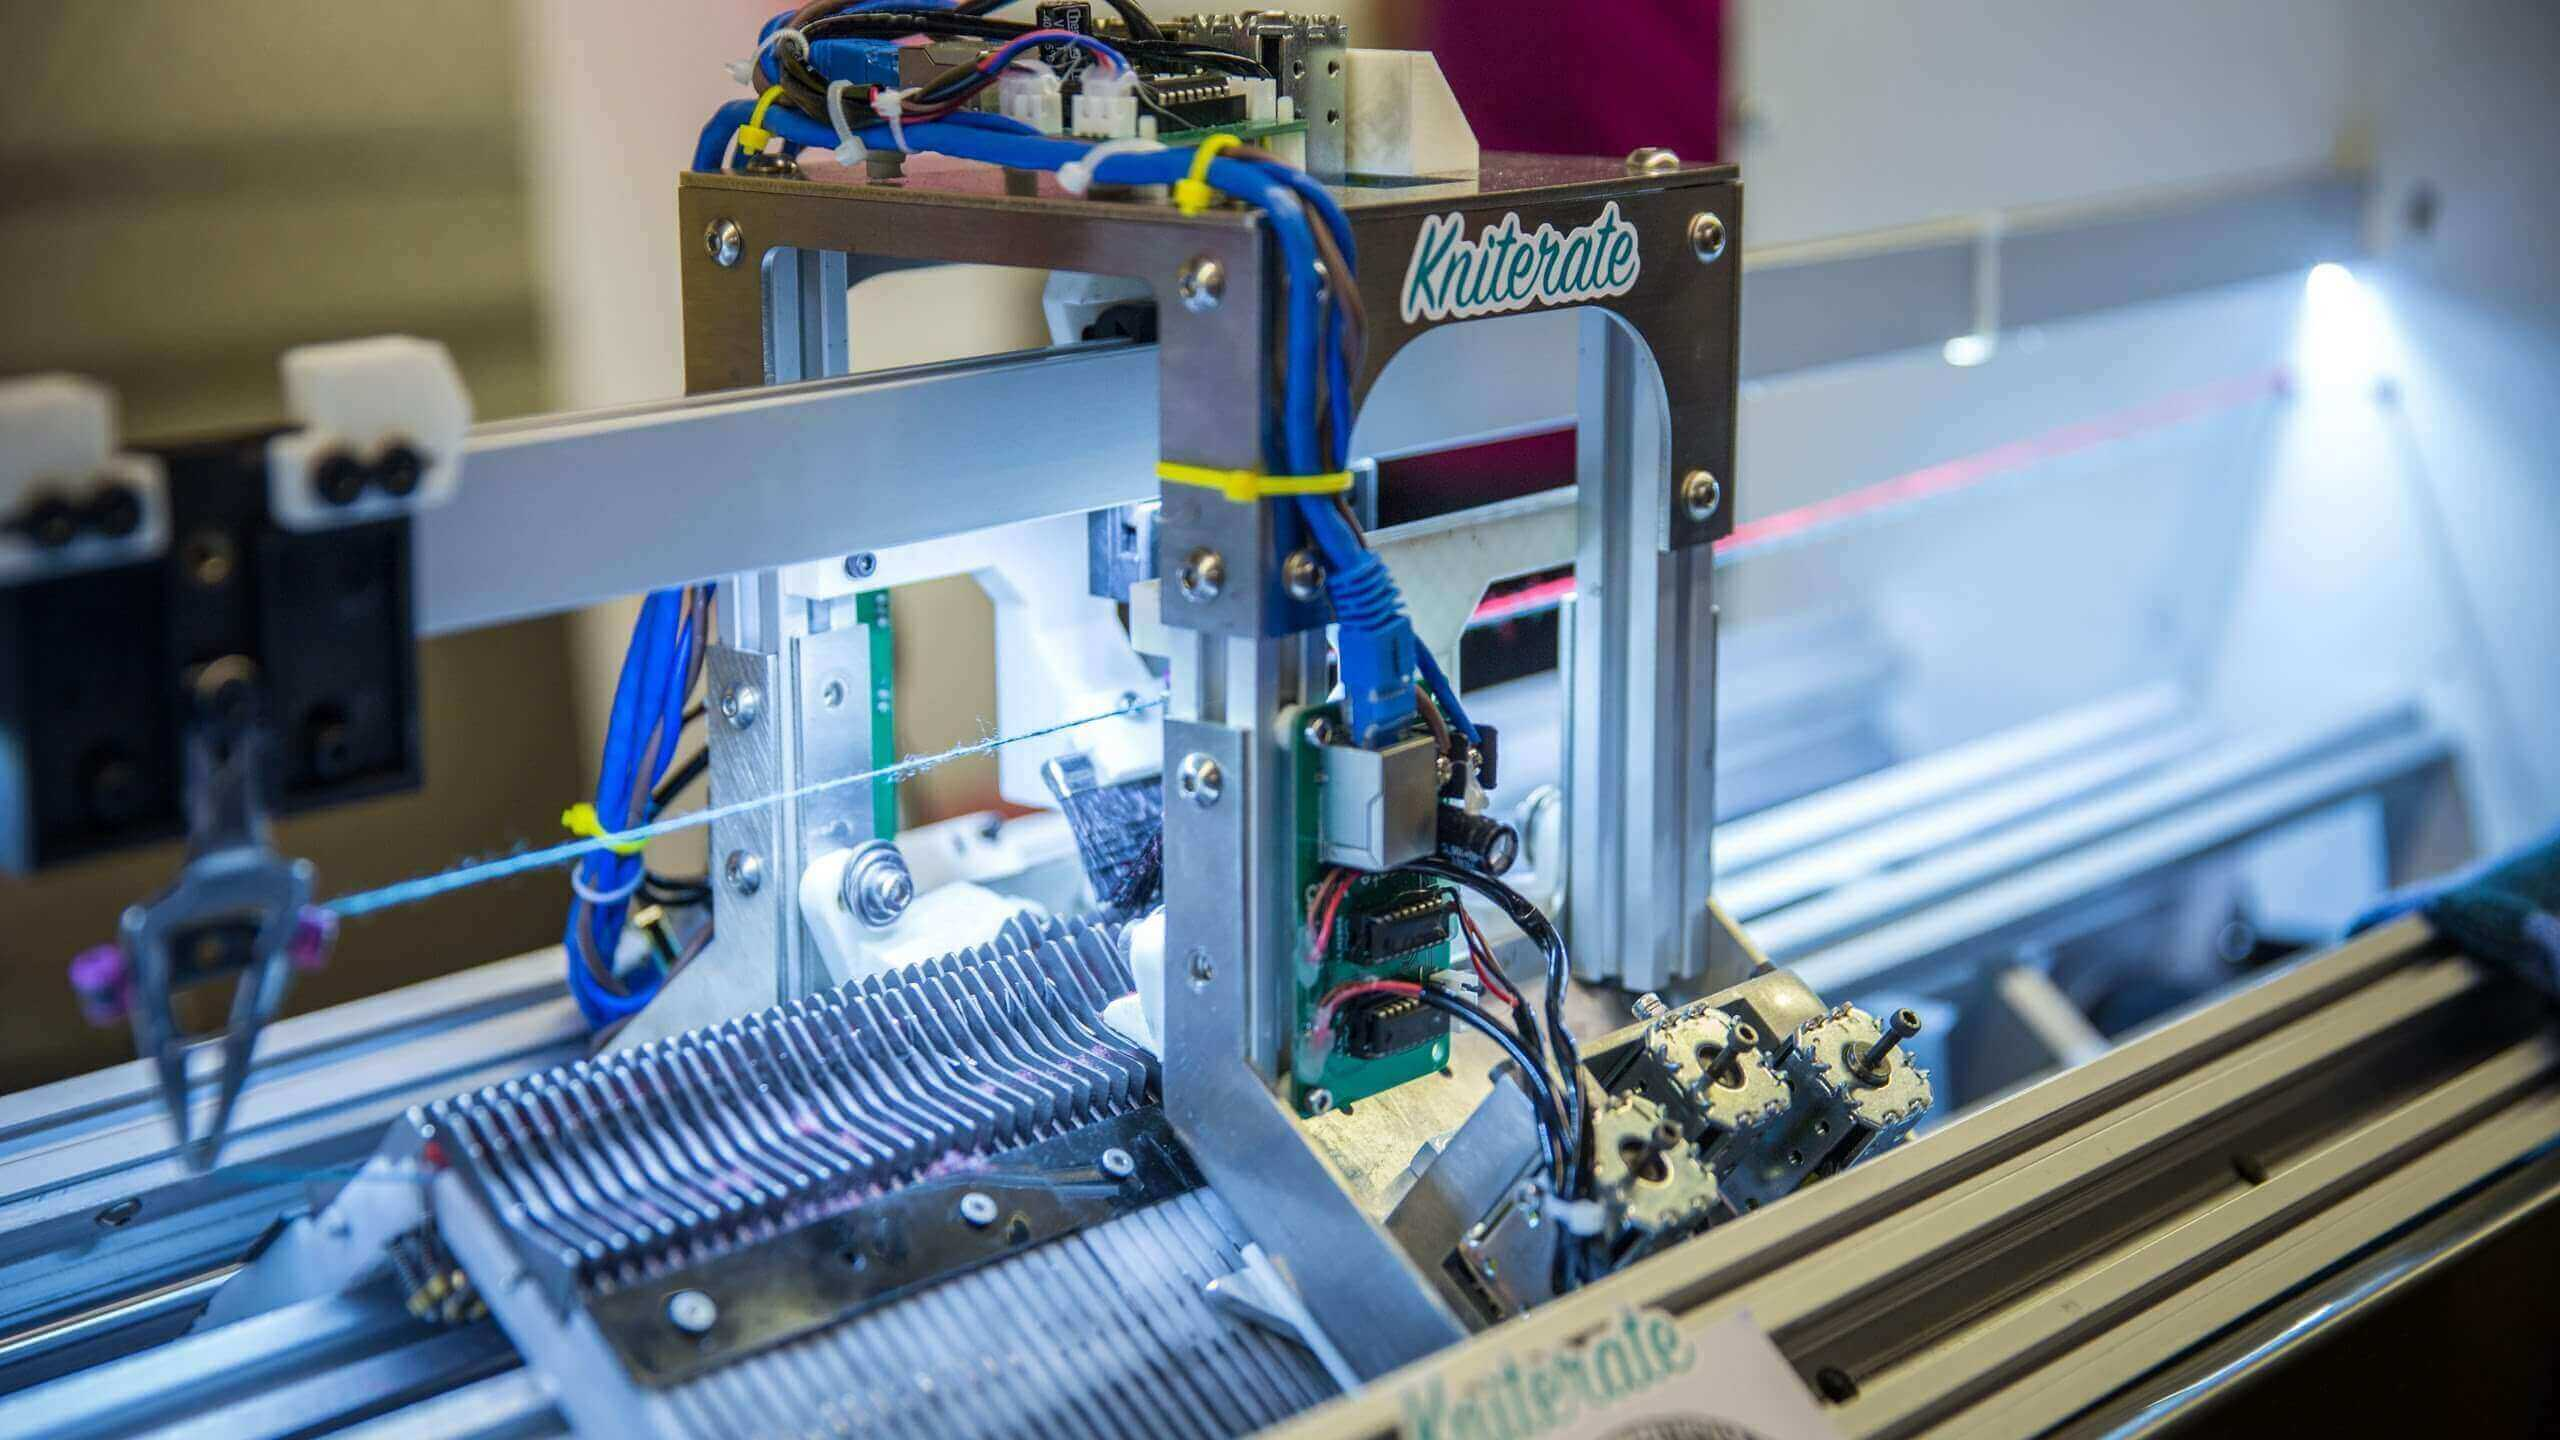 Kniterate is a 3D Printer for Clothes | All3DP